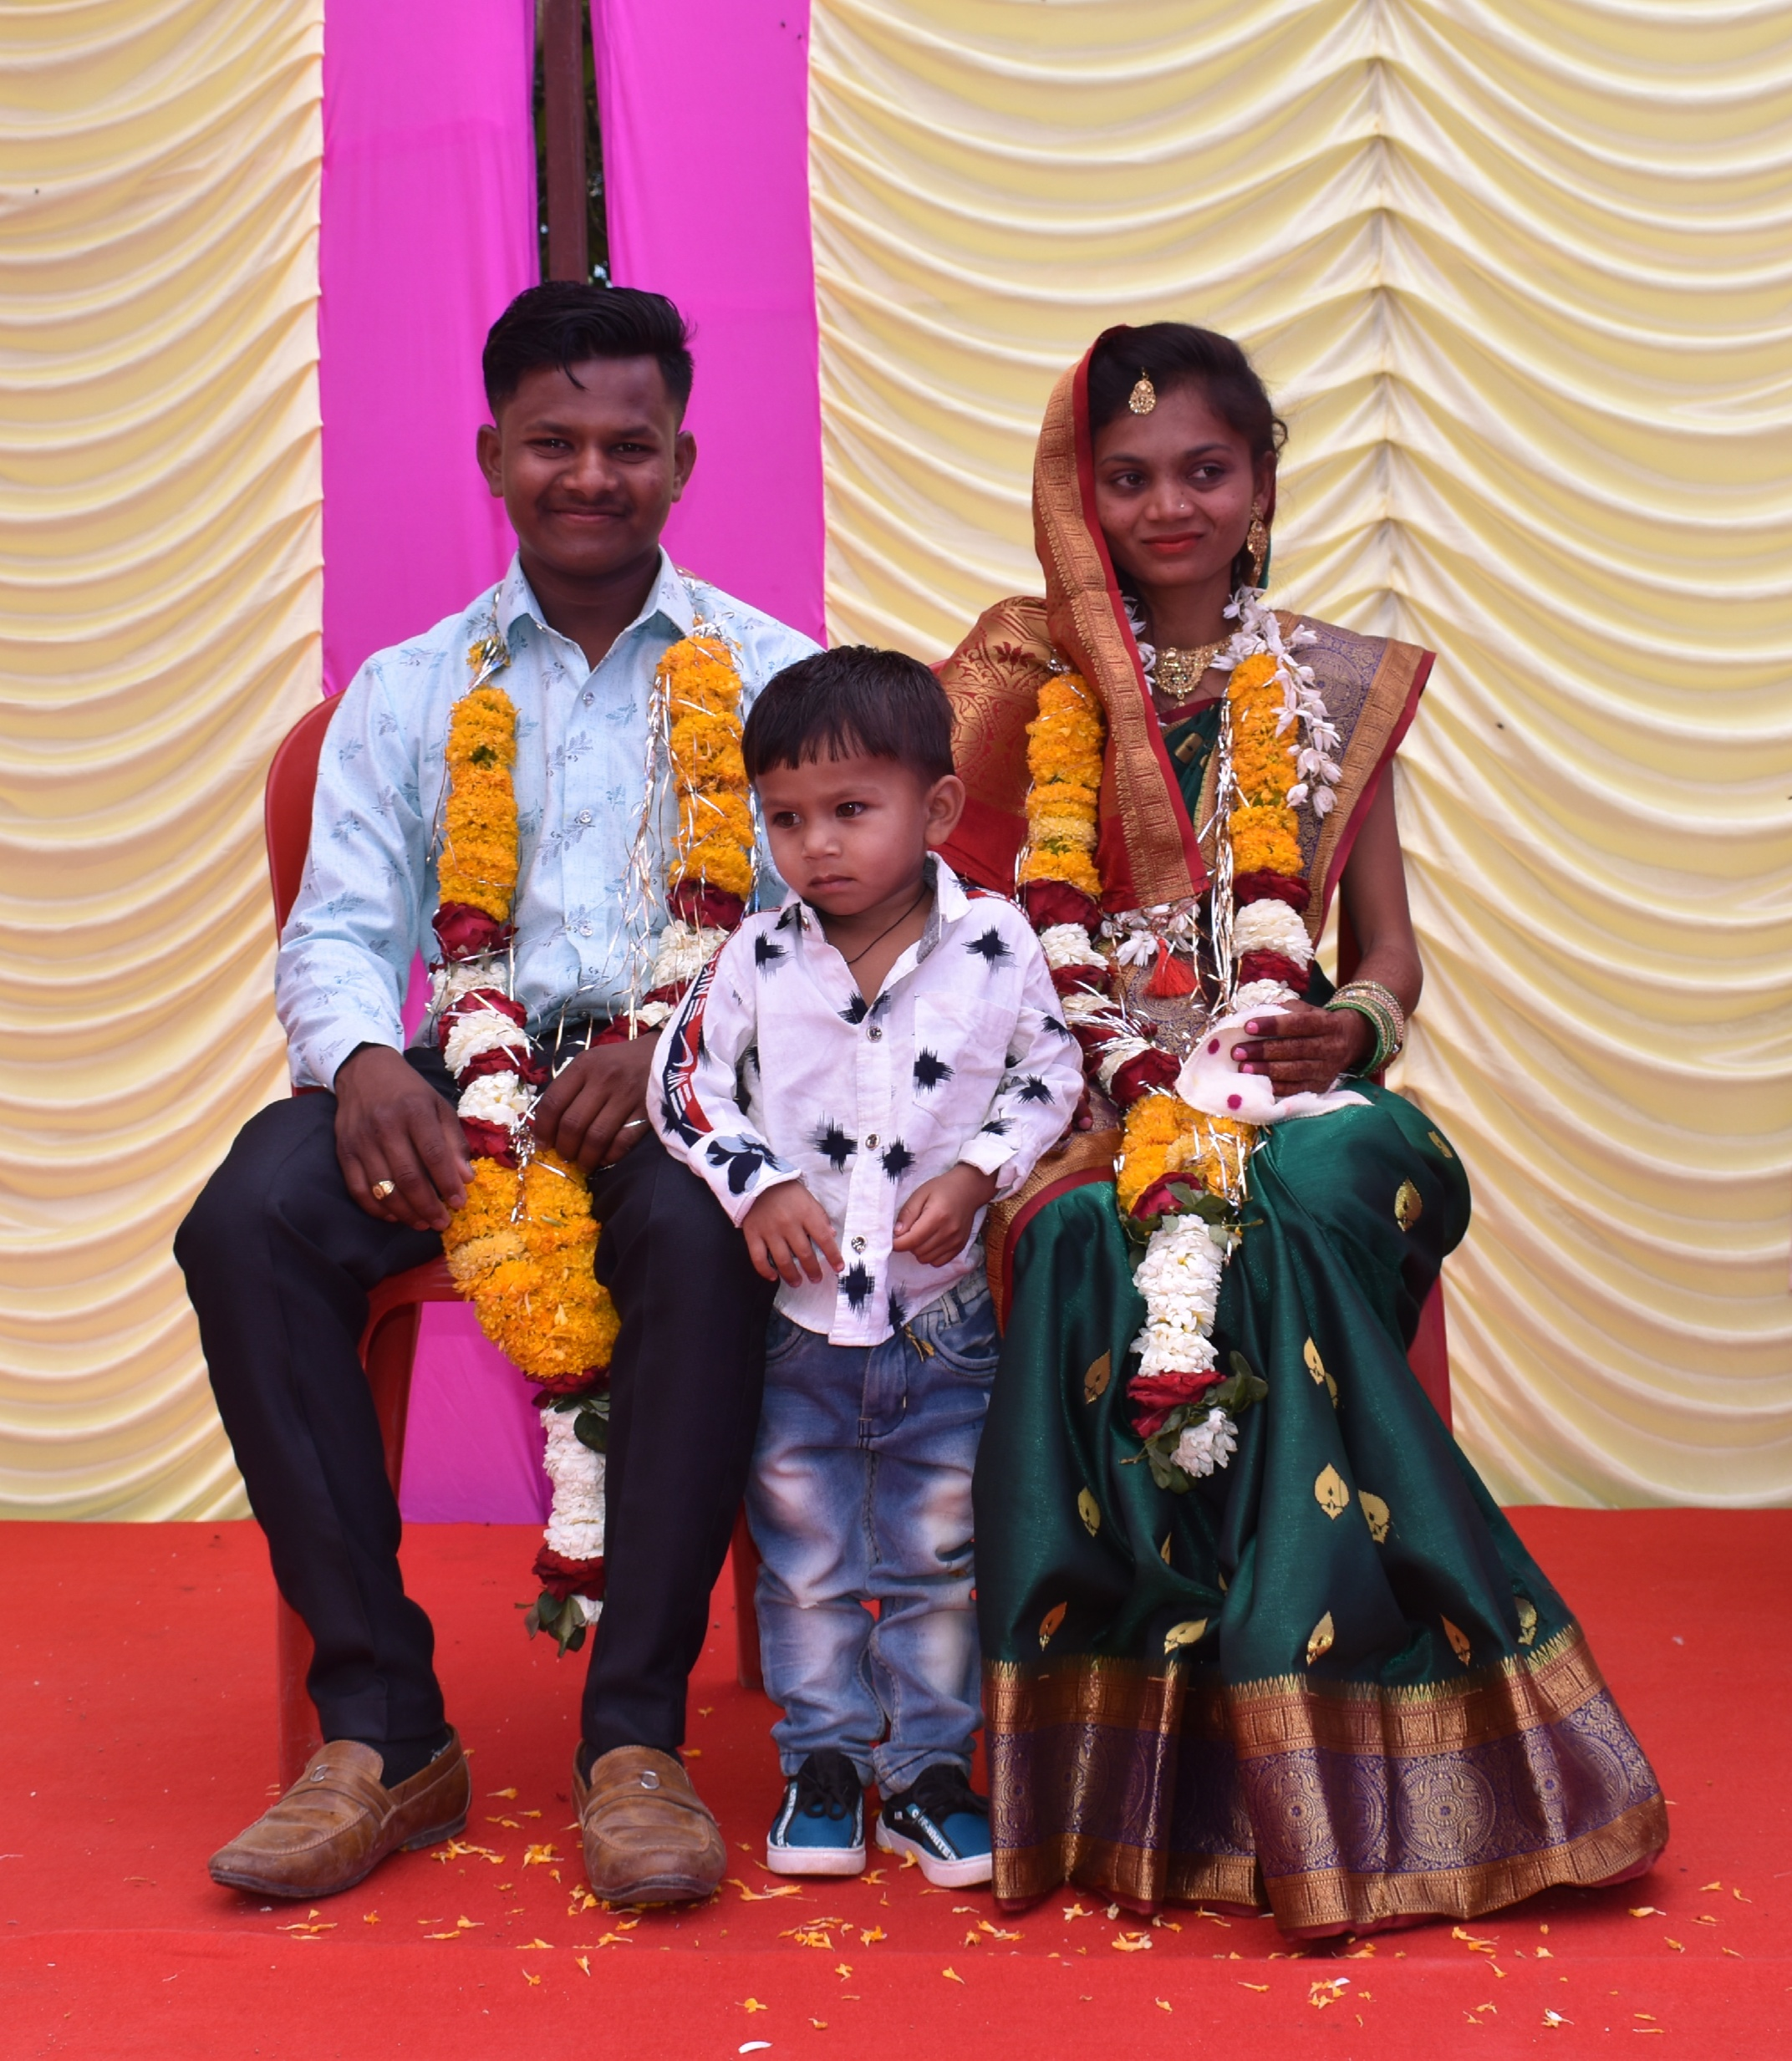 A couple with kid